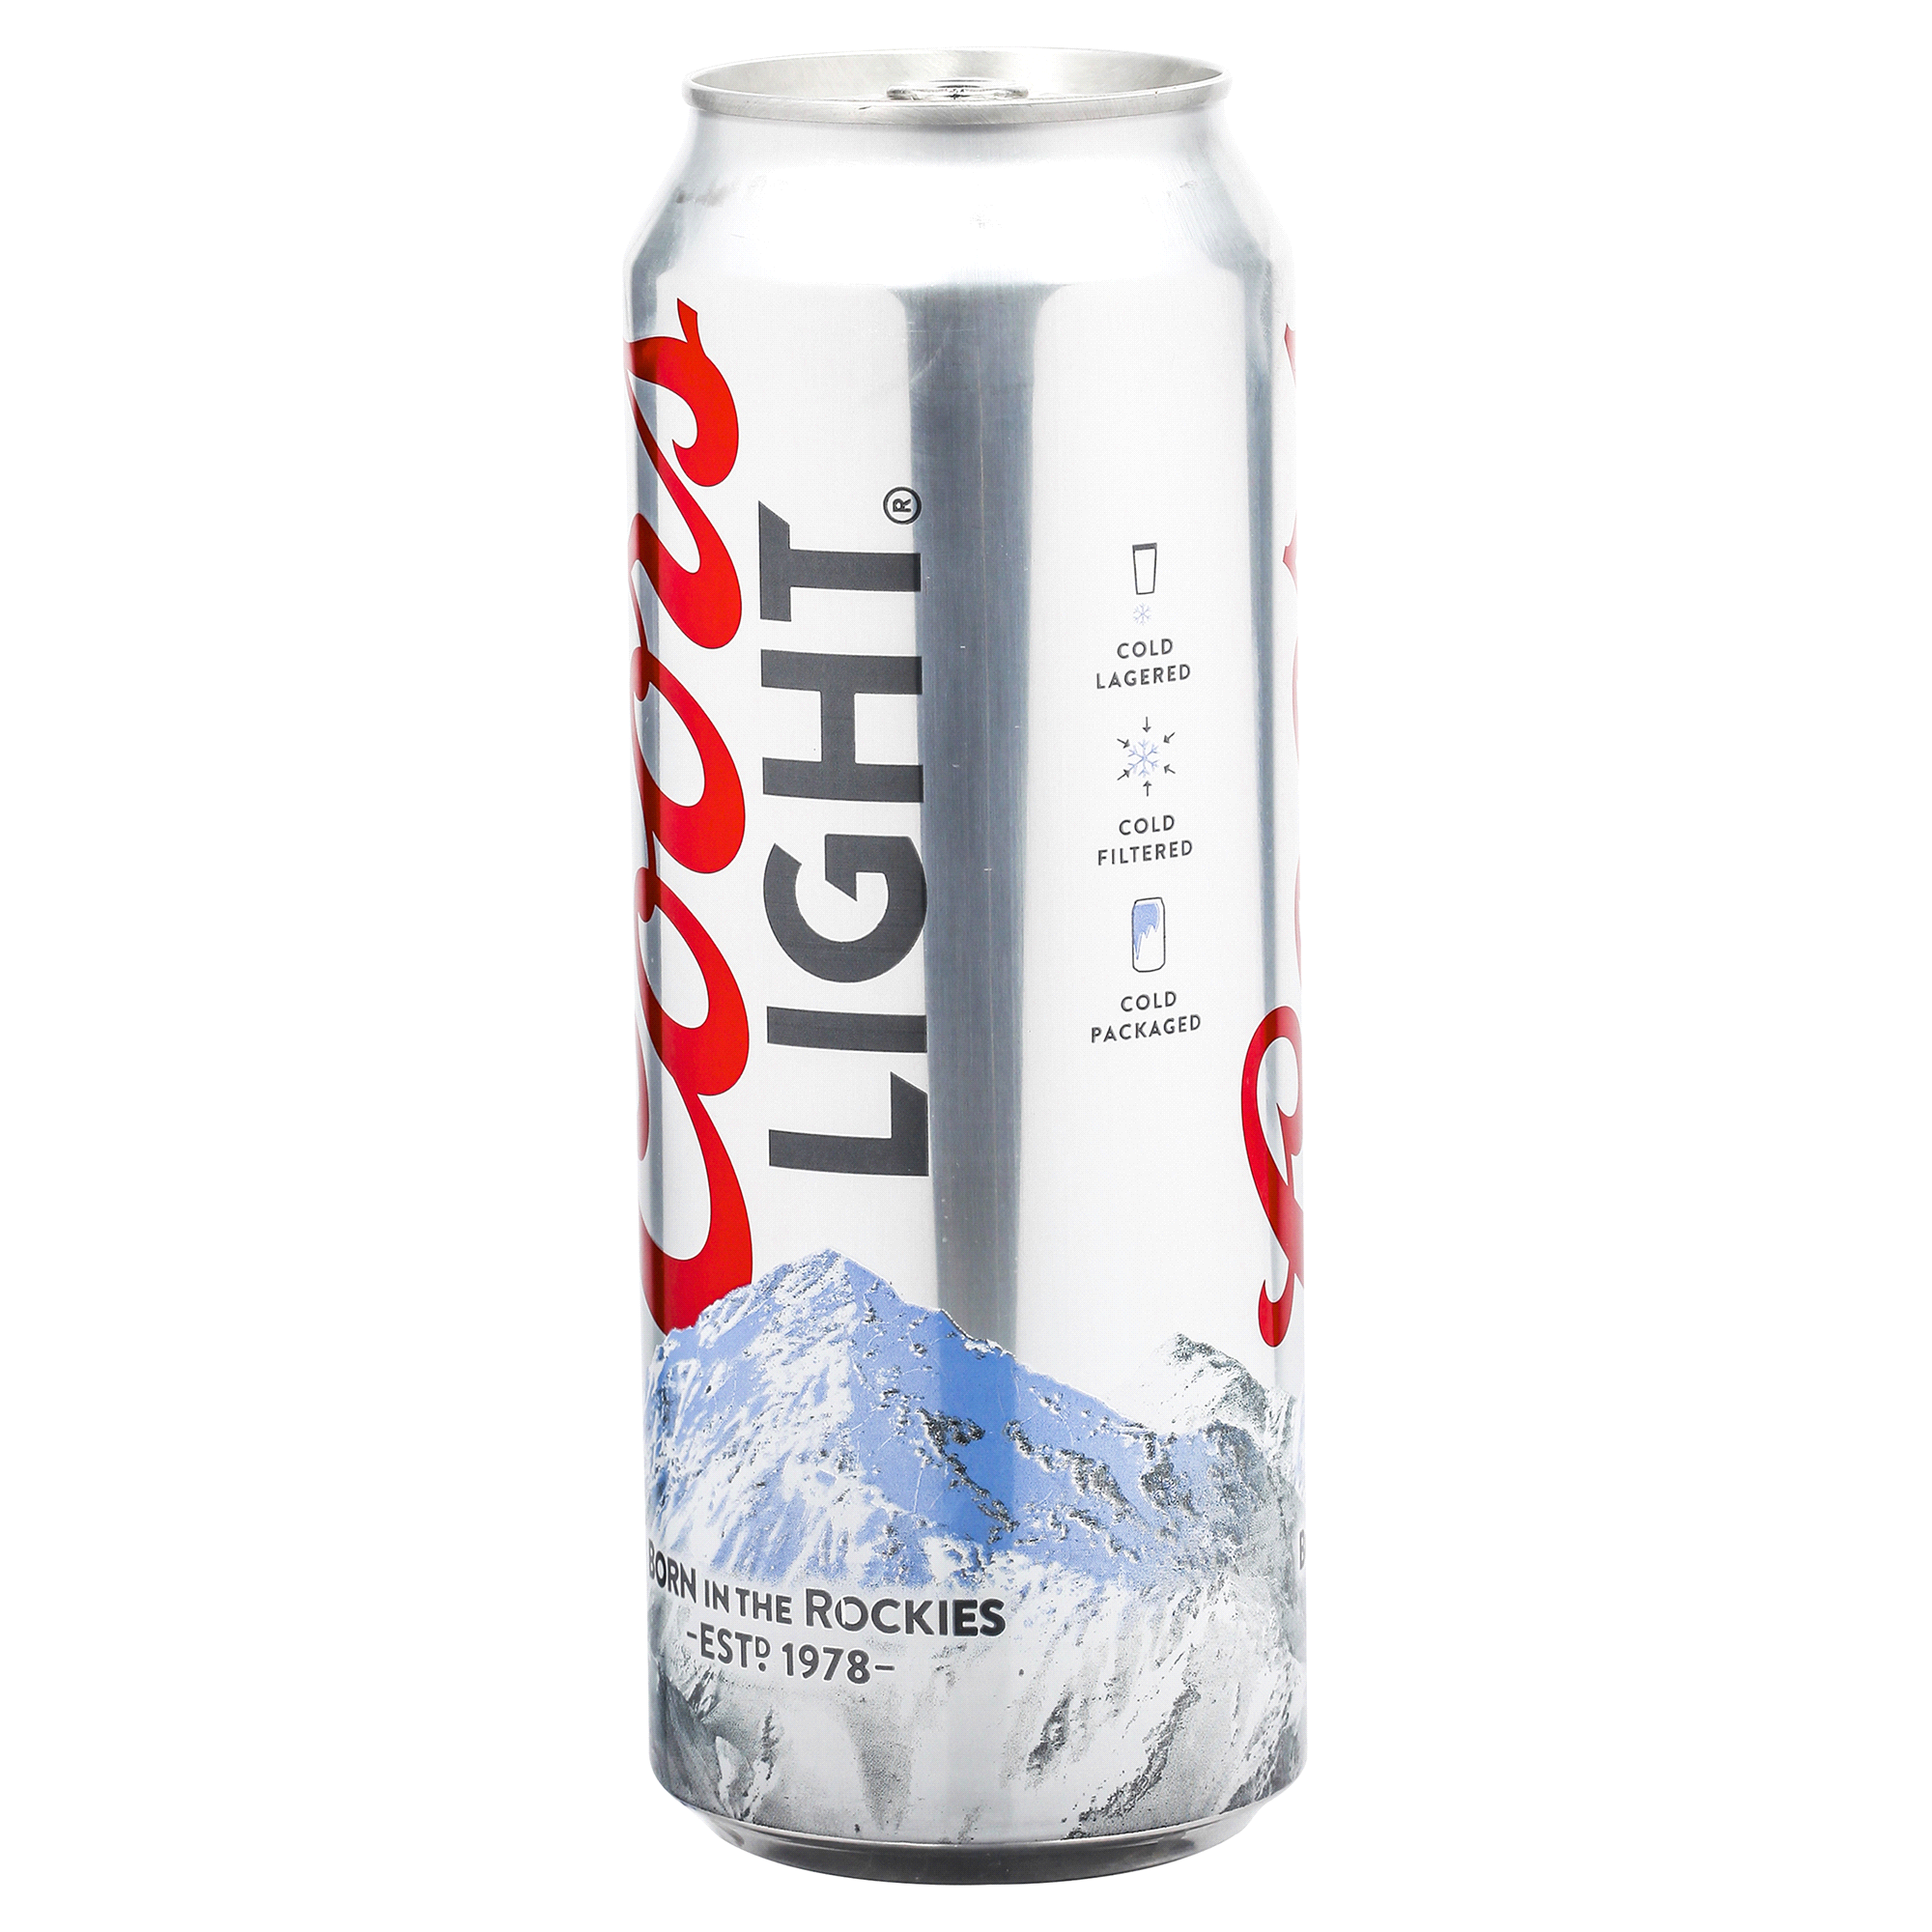 How Much Alcohol Does A 24 Oz Of Coors Light Have